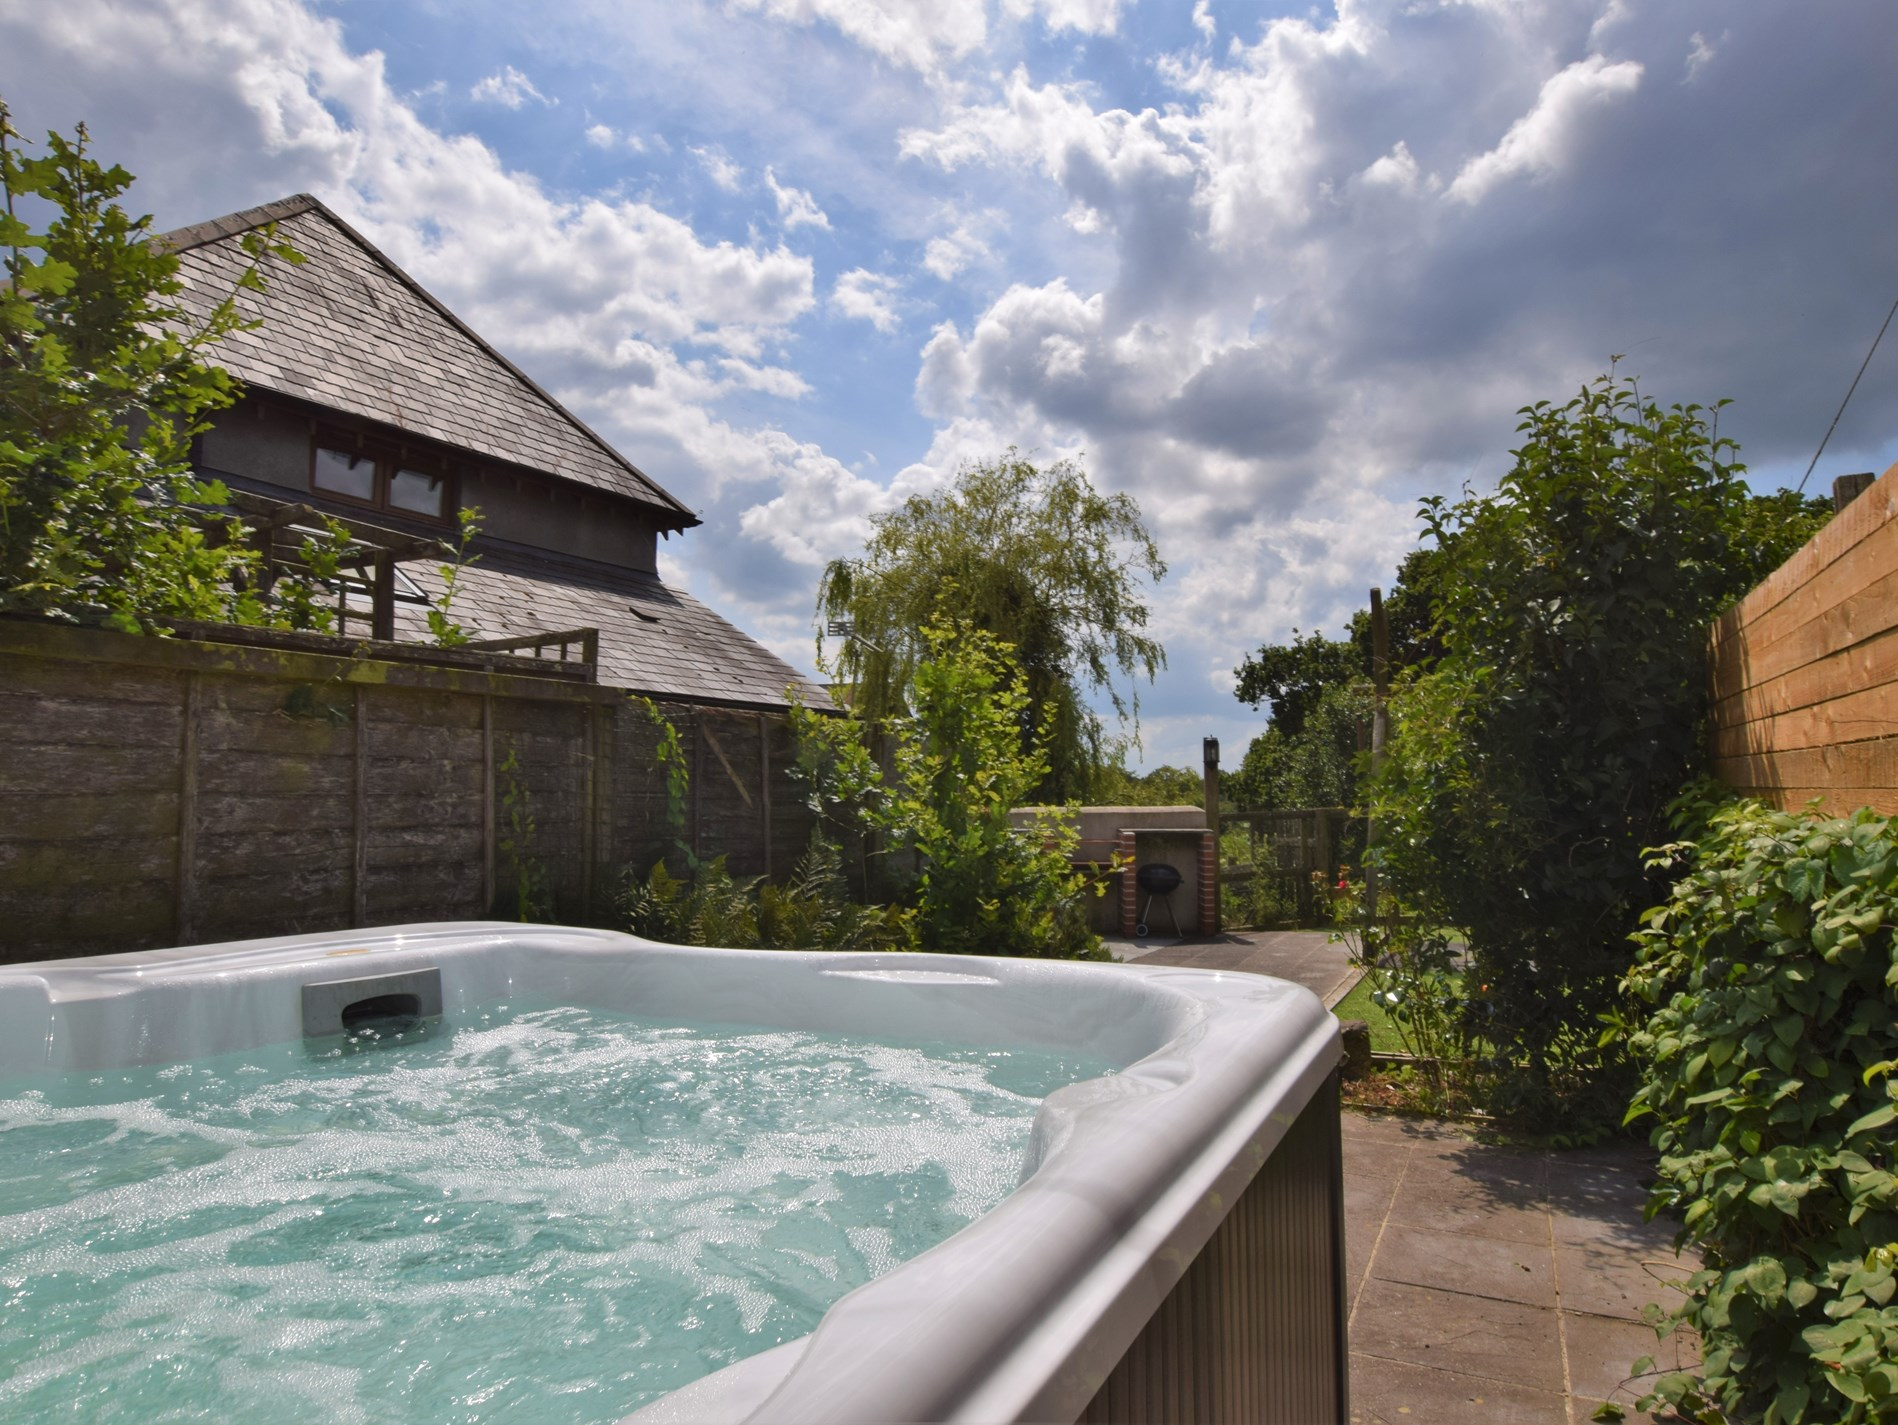 Relish in the hot tub for those special moments